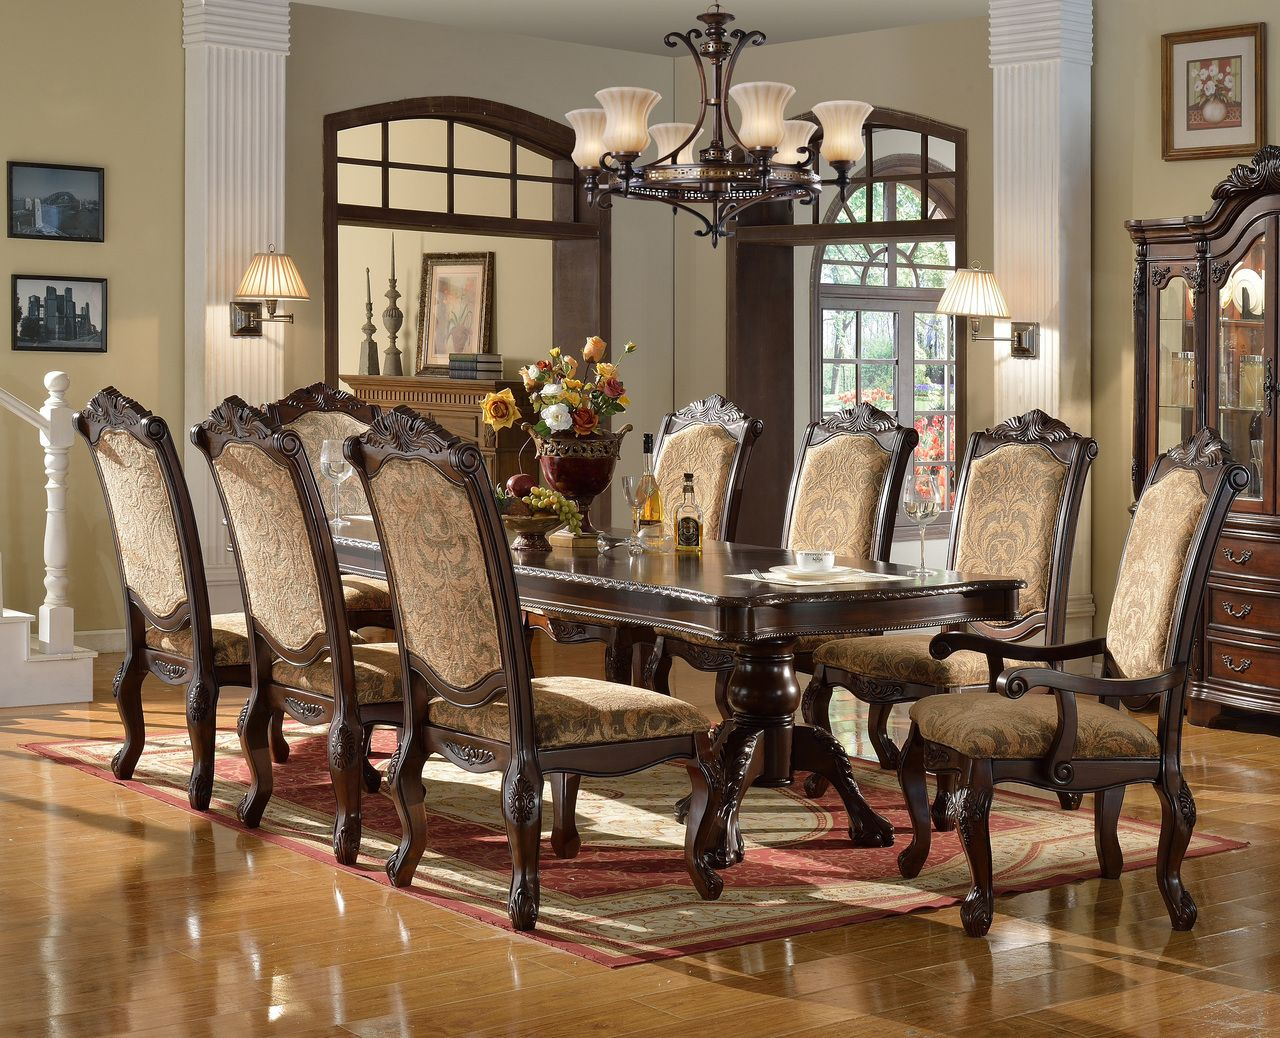 Palace 120 Cherry Oak Pearl Extendable 9 Pc Dining Table Set Formal Dining Tables Formal Dining Room Sets Dining Room Table Centerpieces